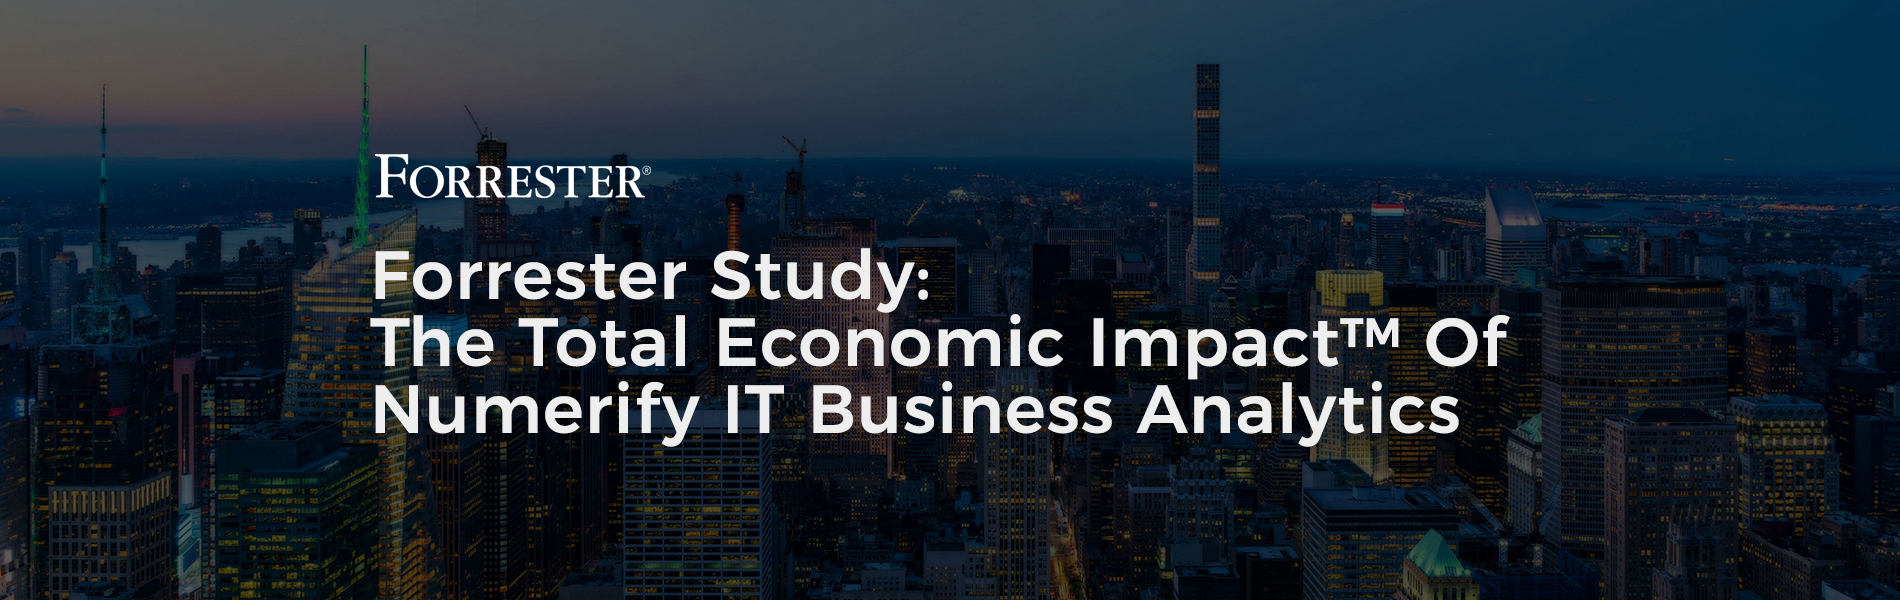 Forrester Study: The Total Economic Impact™ Of Numerify IT Business Analytics